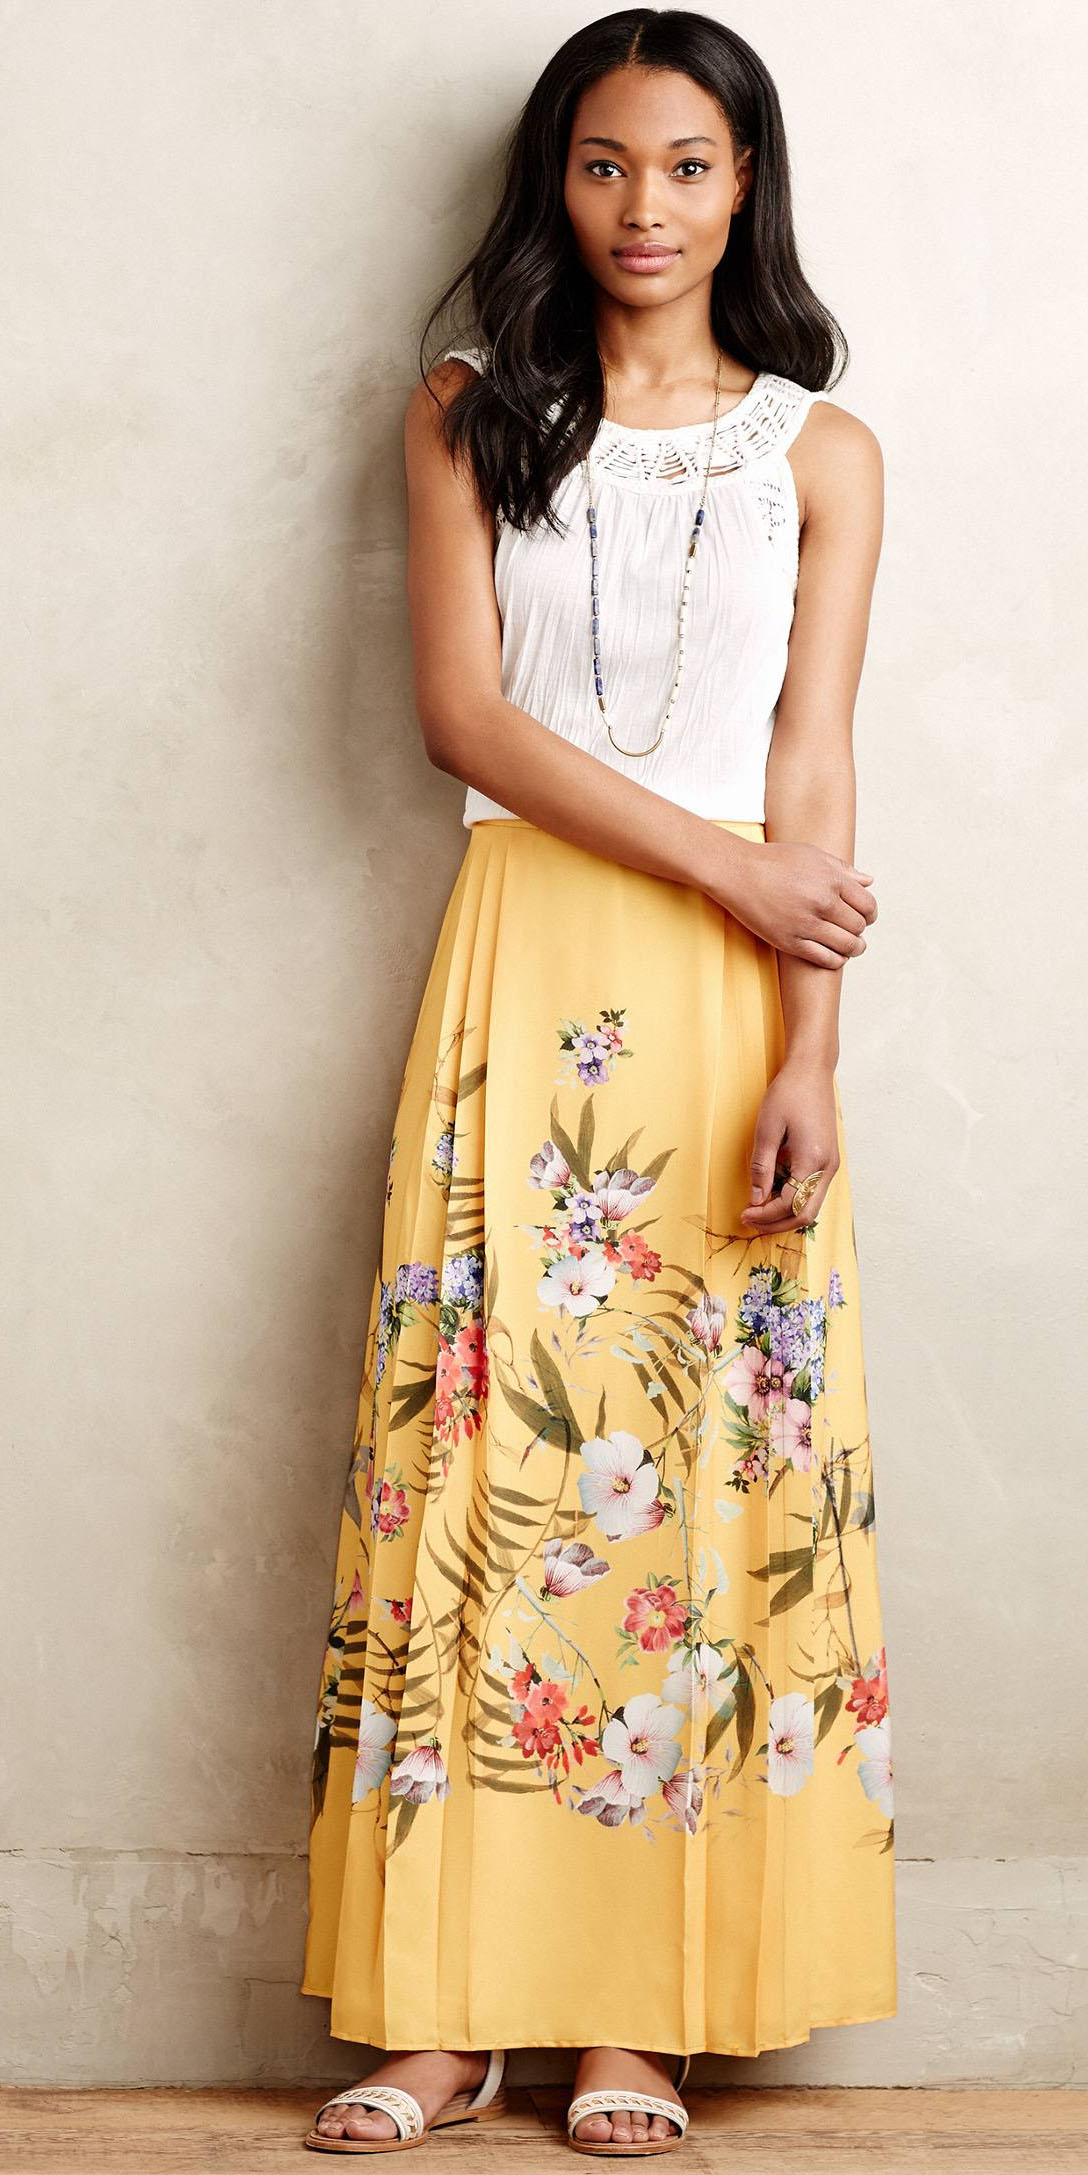 white-top-brun-floral-print-necklace-white-shoe-sandals-yellow-maxi-skirt-spring-summer-lunch.jpeg